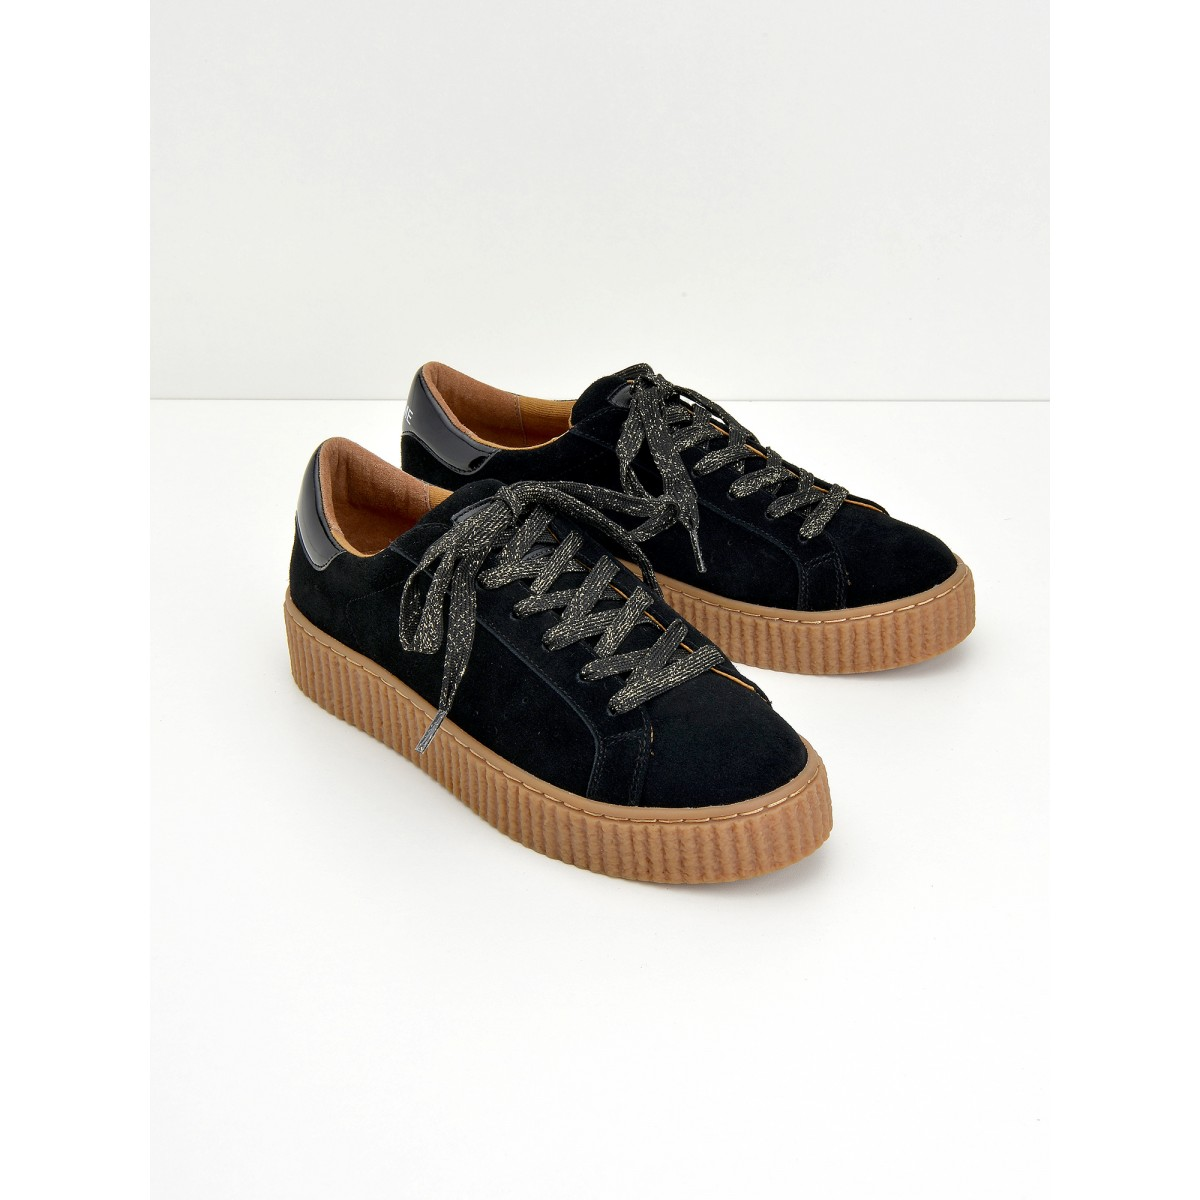 No Name PICADILLY SNEAKER - SUEDE - BLACK SOLE MASTIC